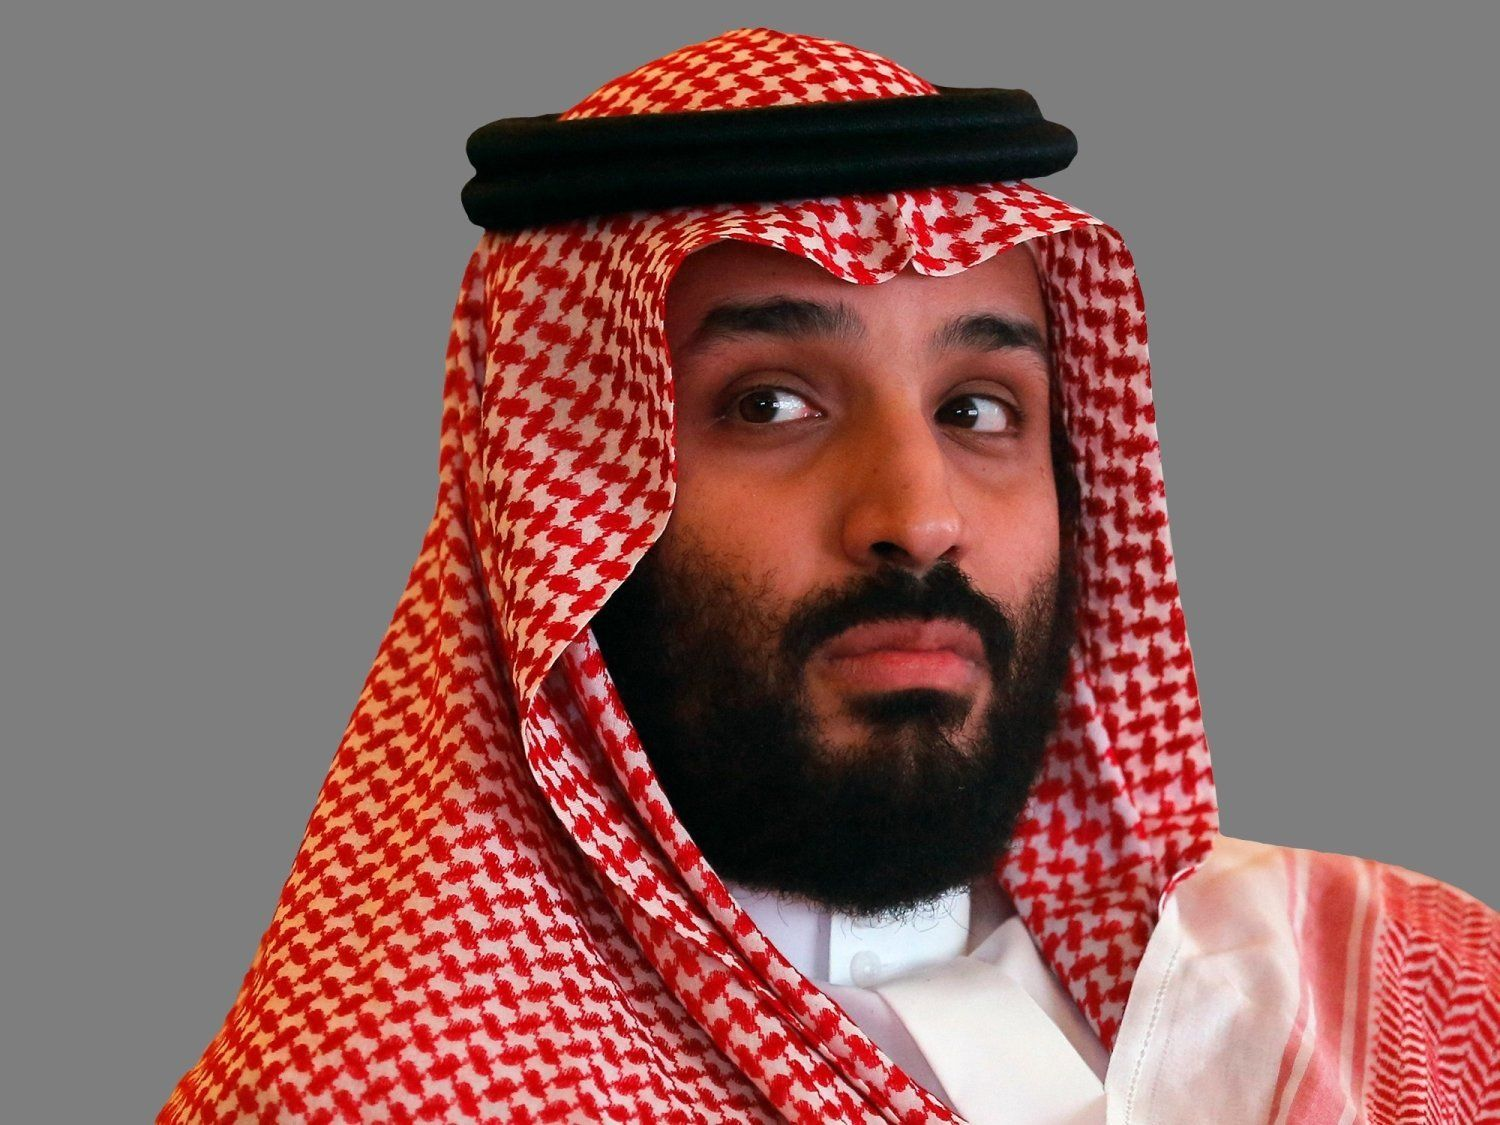 Mohammed bin Salman, Saudi Arabia Crown Prince, at Future Investment Initiative conference, Riyadh, Saudi Arabia, graphic element on gray